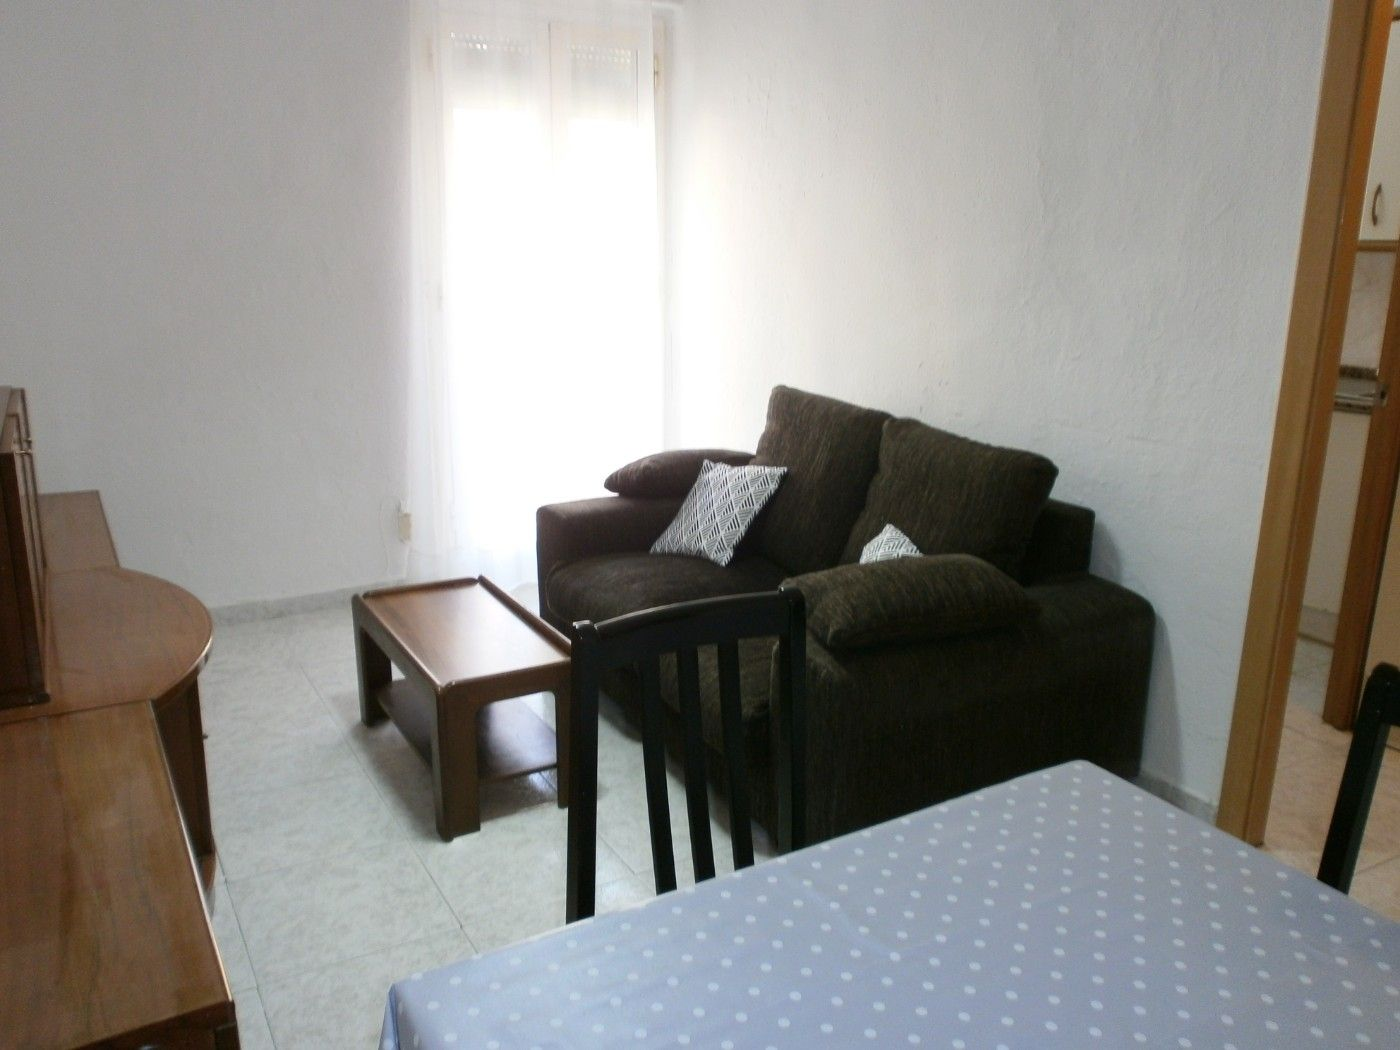 Rent Flat in Via augusta, 31. Piso de 1 hab., cerca playa